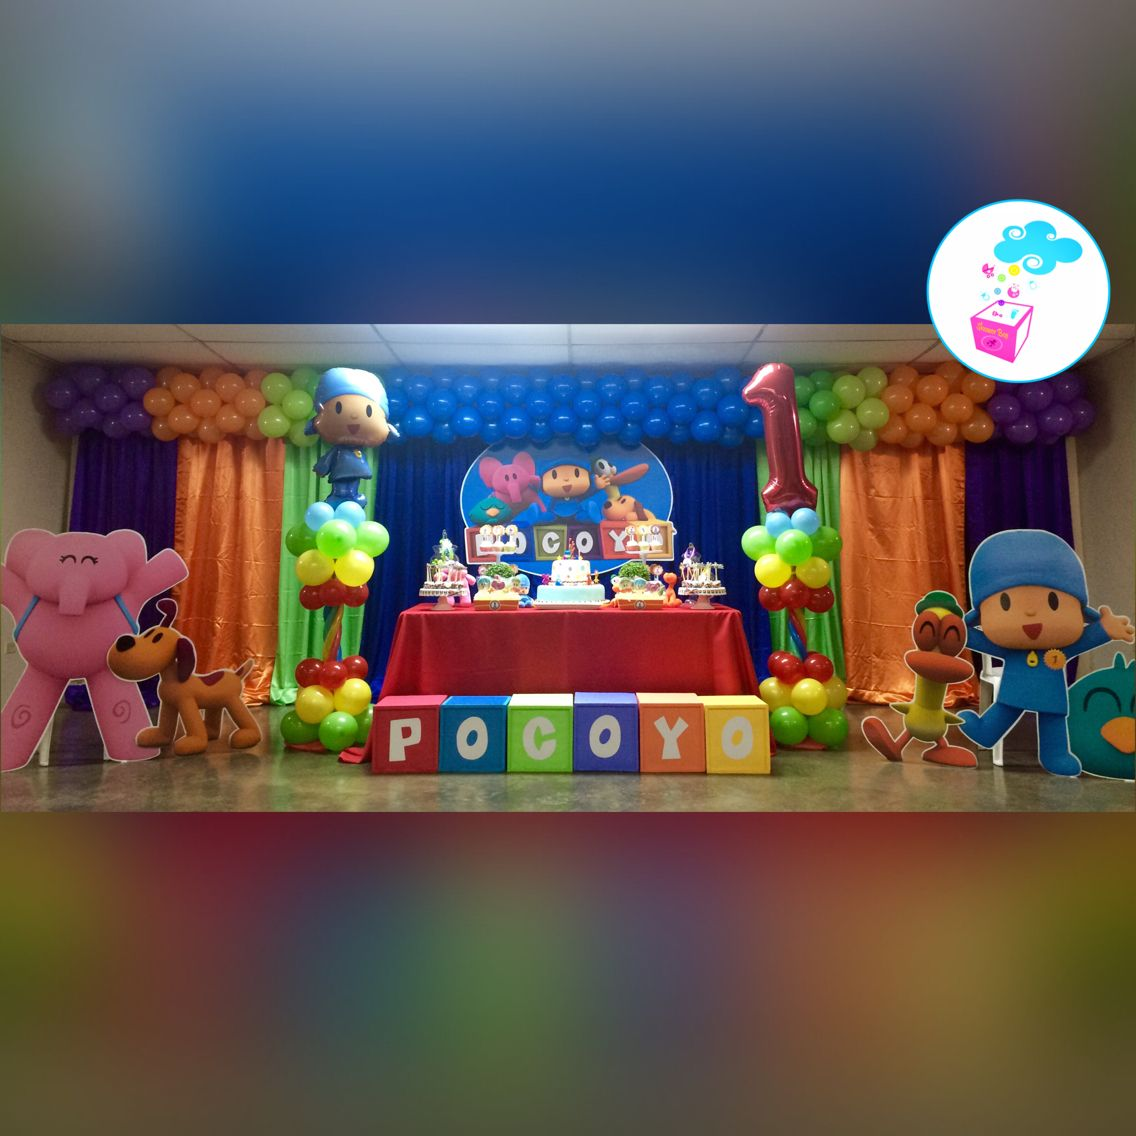 Pocoyo decoraciones para fiestas the for Decoracion e